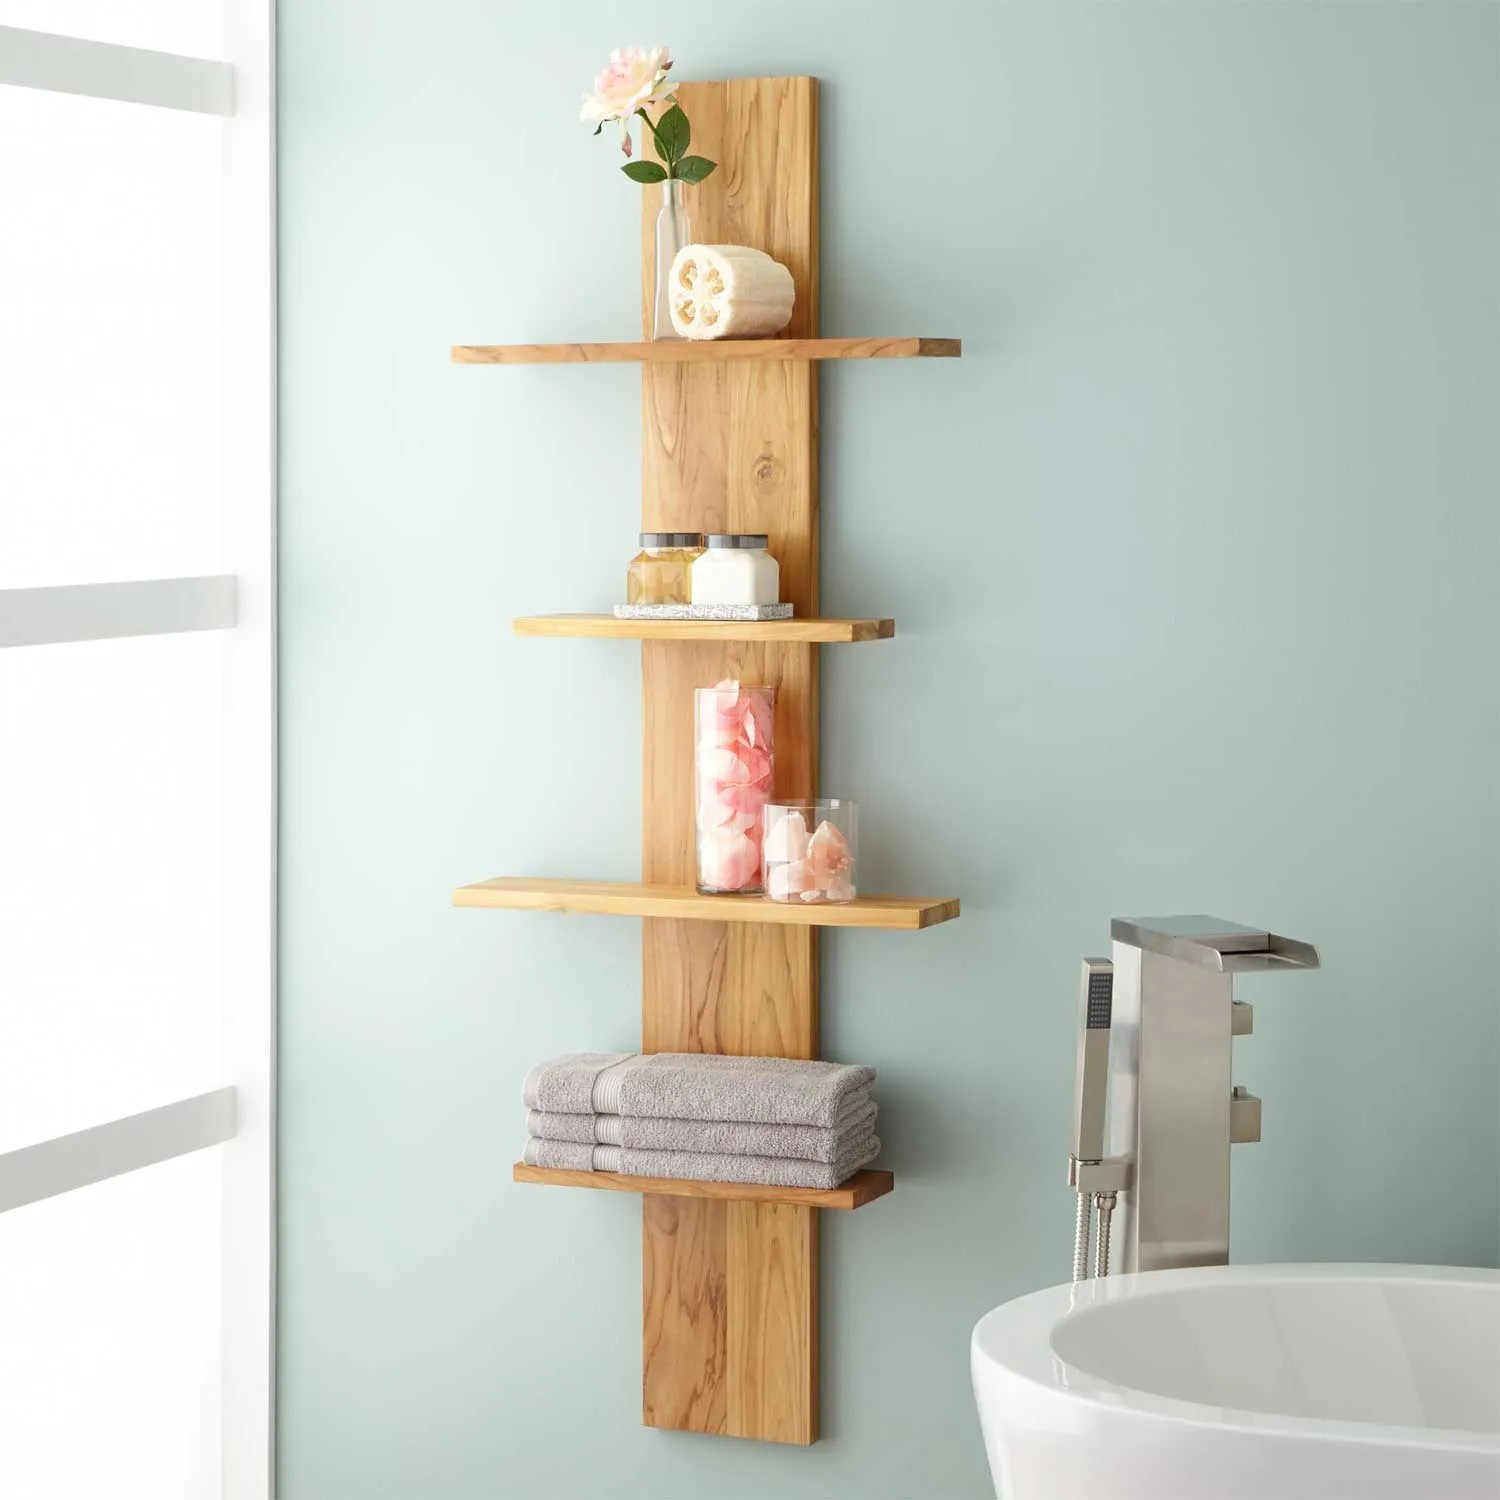 Charmful Wulan Hanging Bathroom Shelf Four Shelves Bathroom Wall Shelf Signature Hardware Bathroom Wall Shelf Bathroom Wall Shelf Over Toilet bathroom Bathroom Wall Shelf